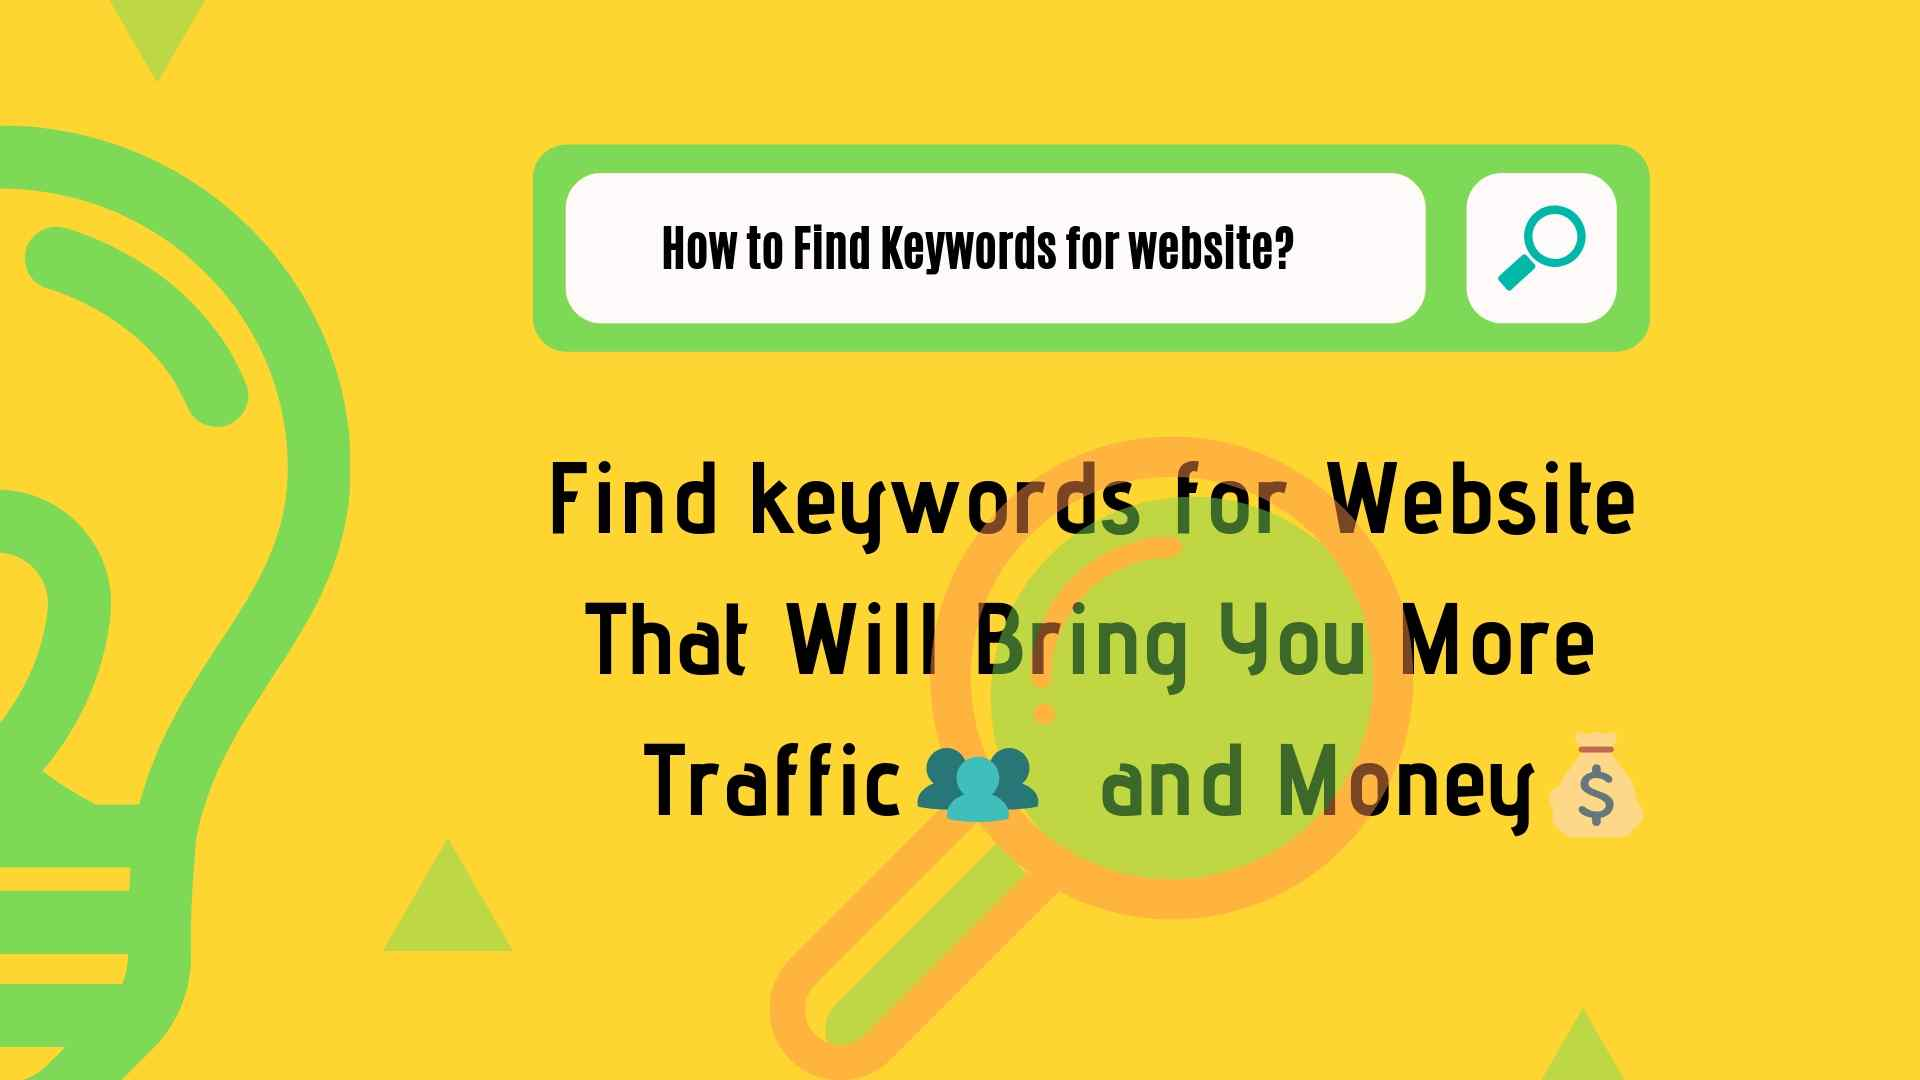 Find keywords for Website That Will Bring You More Traffic and Money